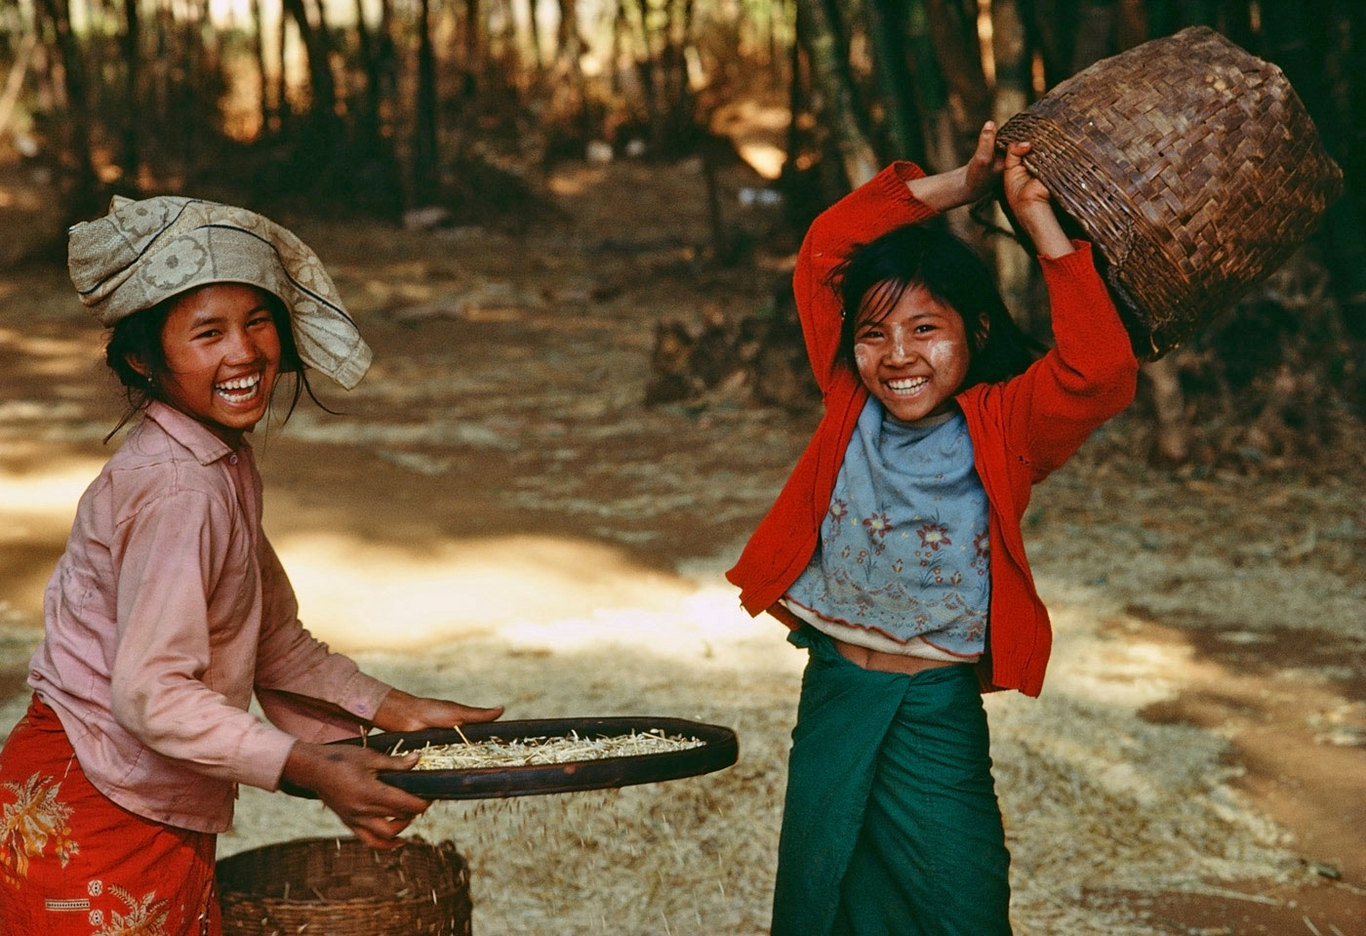 Farm children in Burma :  DAILY LIFE; The Rich, the Poor & the Others : Viviane Moos |  Documentary Photographer